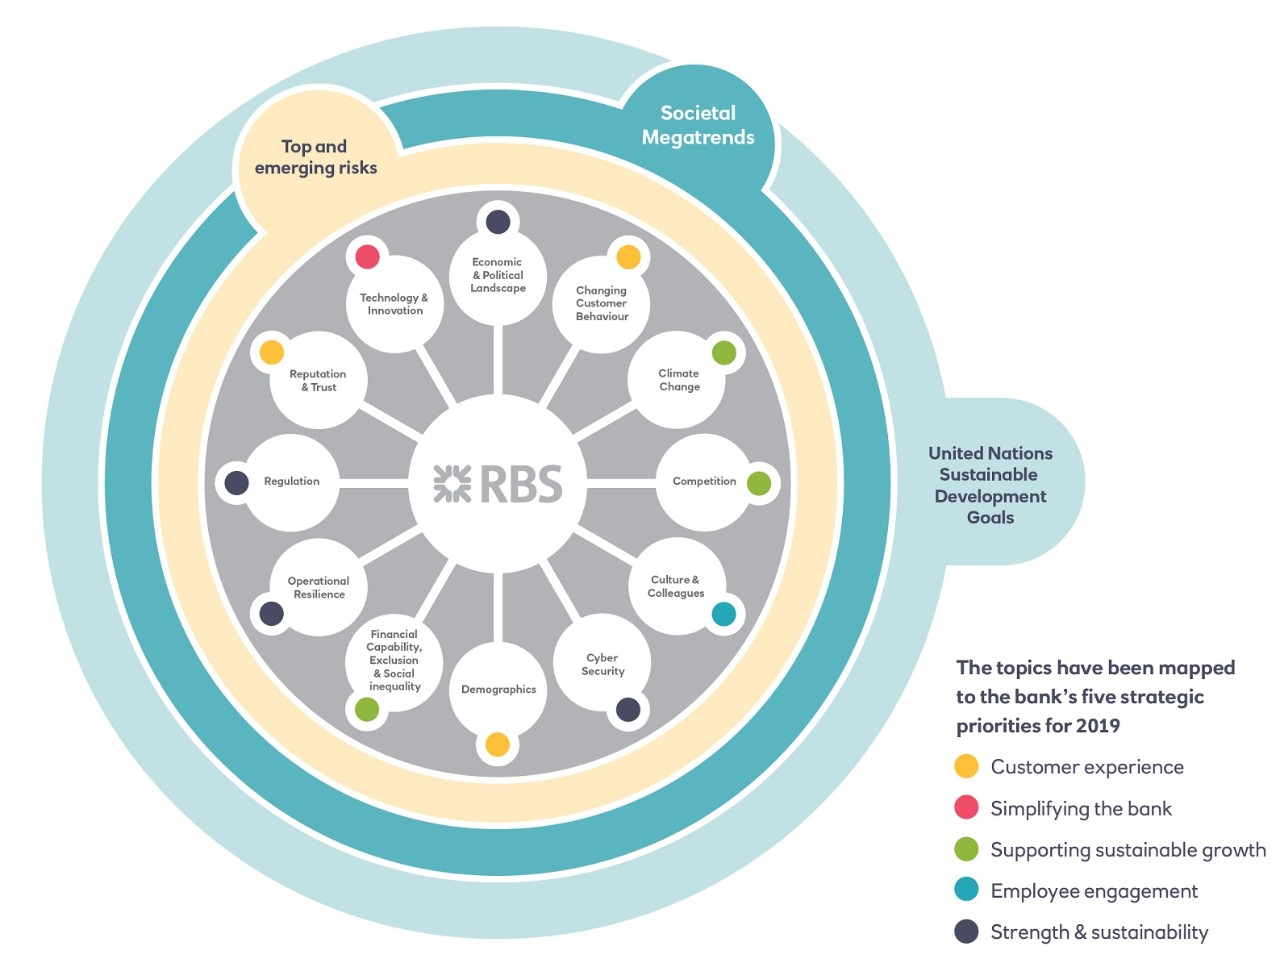 Circular chart showing RBS topics mapped to the five strategic priorities for 2019